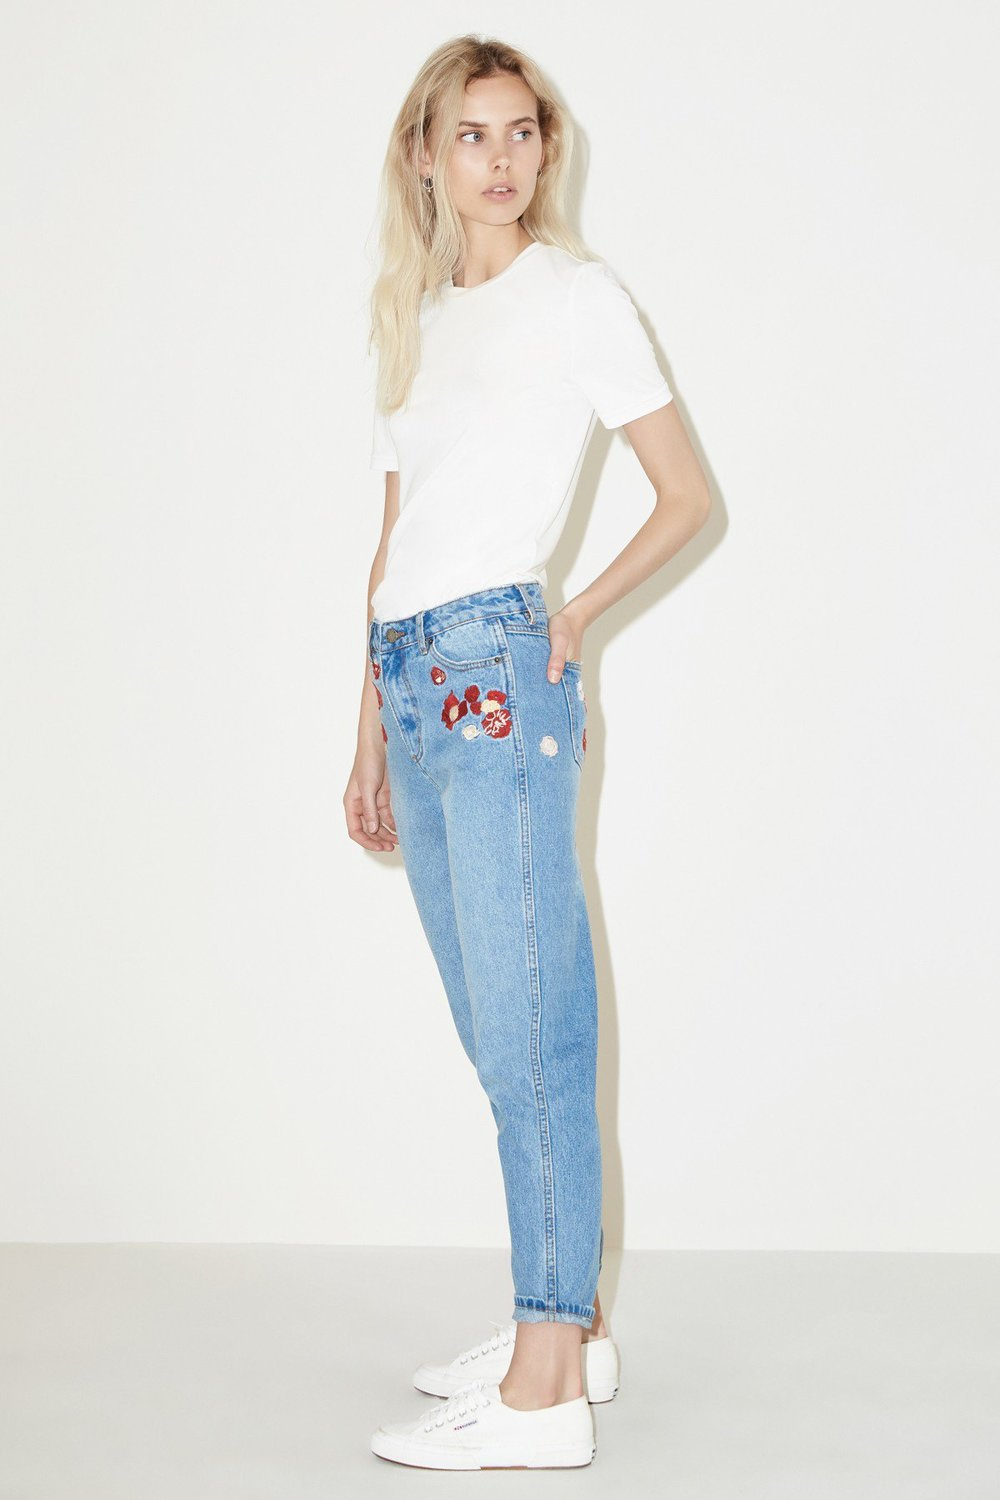 Shop  The Fifth Lyrical T-Shirt  +  Bianca Embroidered Jean .